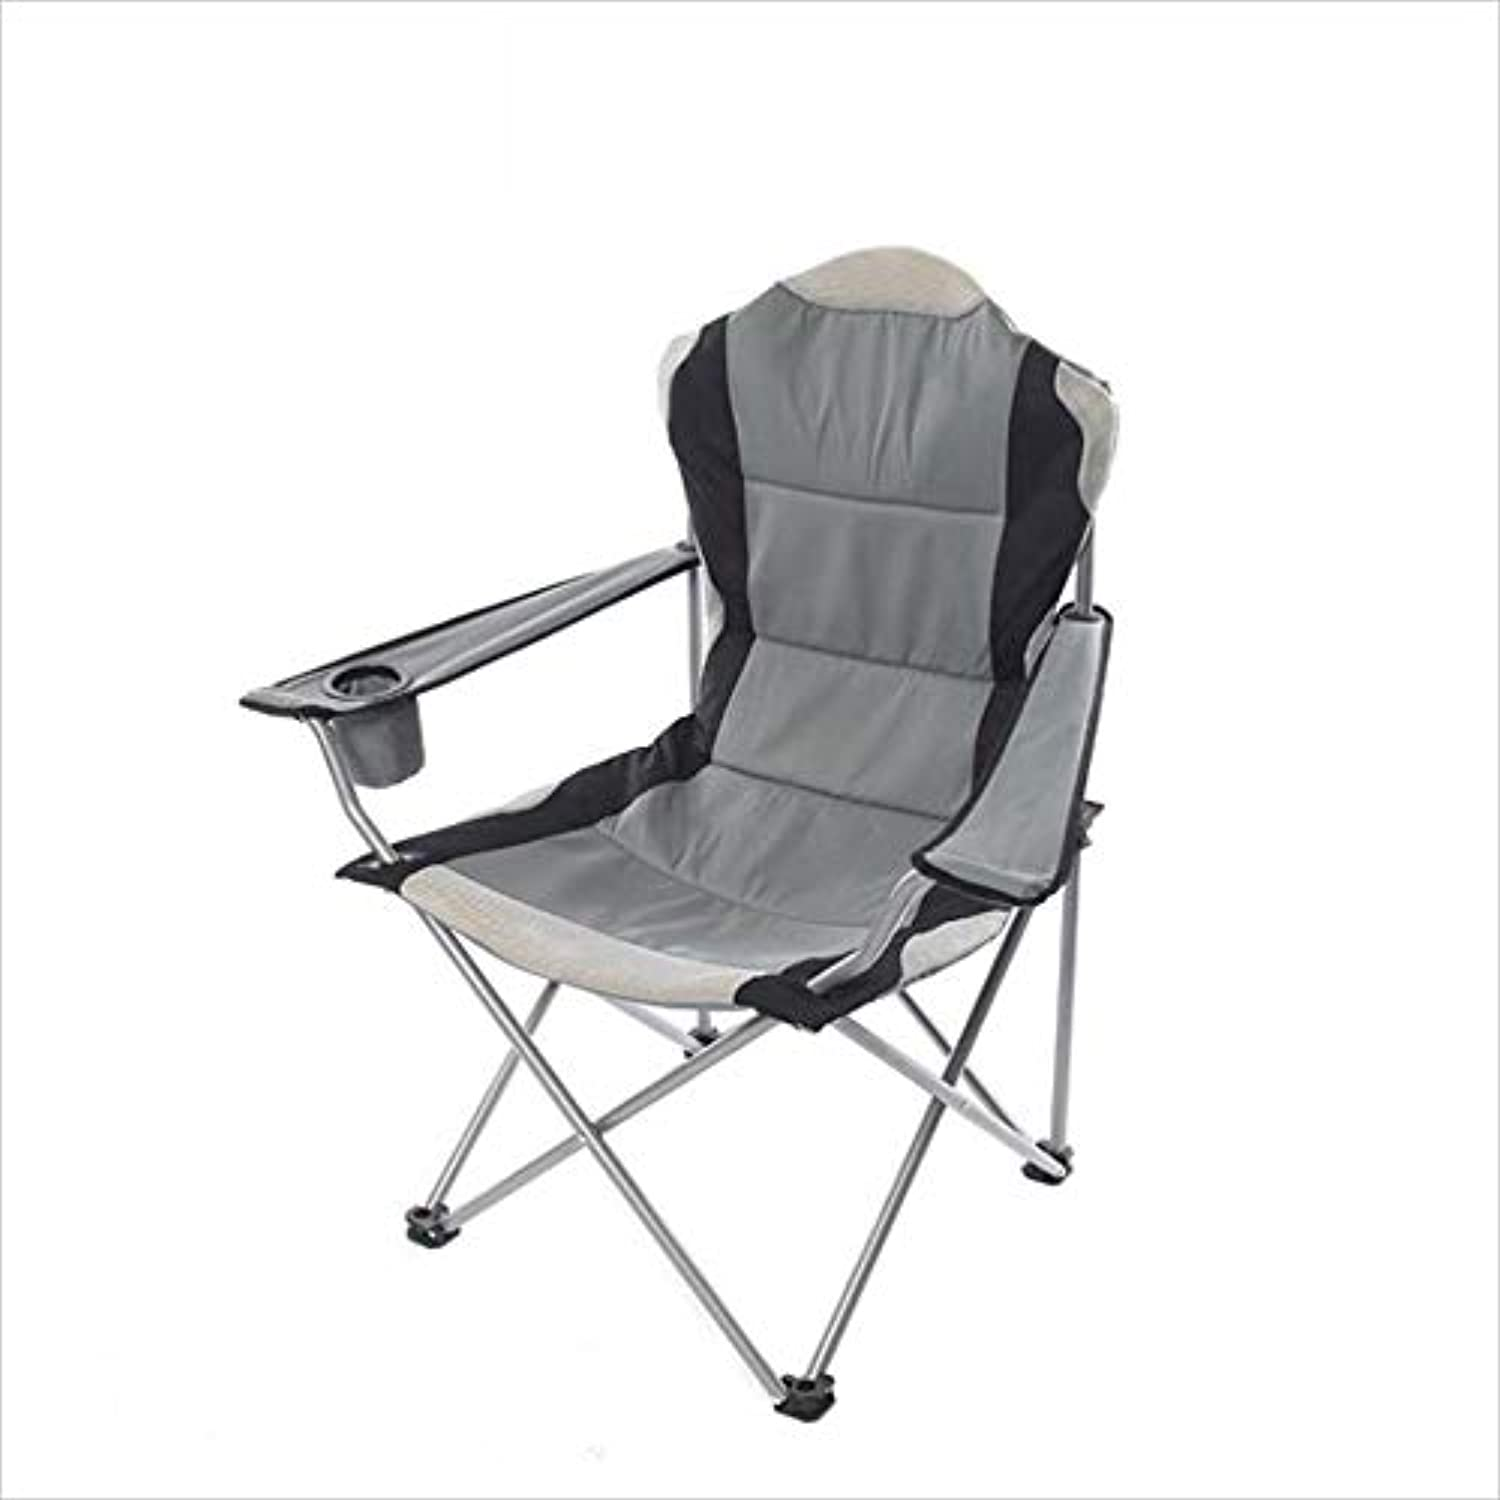 Multifunctional Outdoor Leisure Beach Chair Folding Chair Armchair with Cotton,Folds up to fit Inside Most car Trunks,Versatility